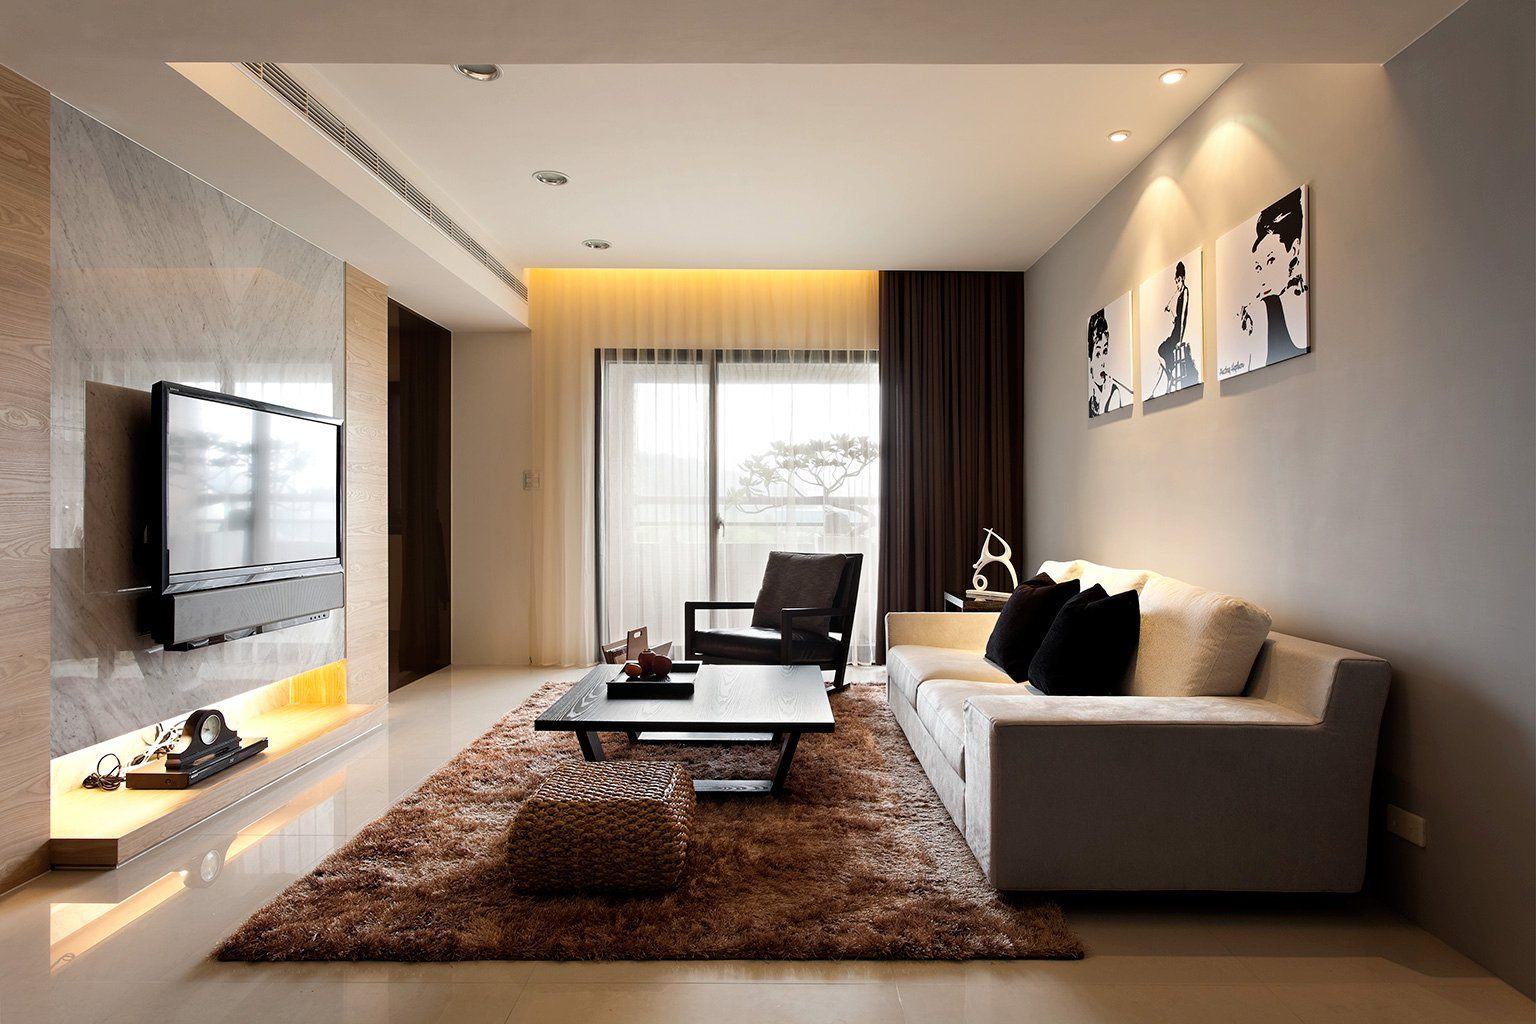 Living Room Design Contemporary Magnificent Fascinating Decoration Ideas For Small Living Room With Brown Design Decoration